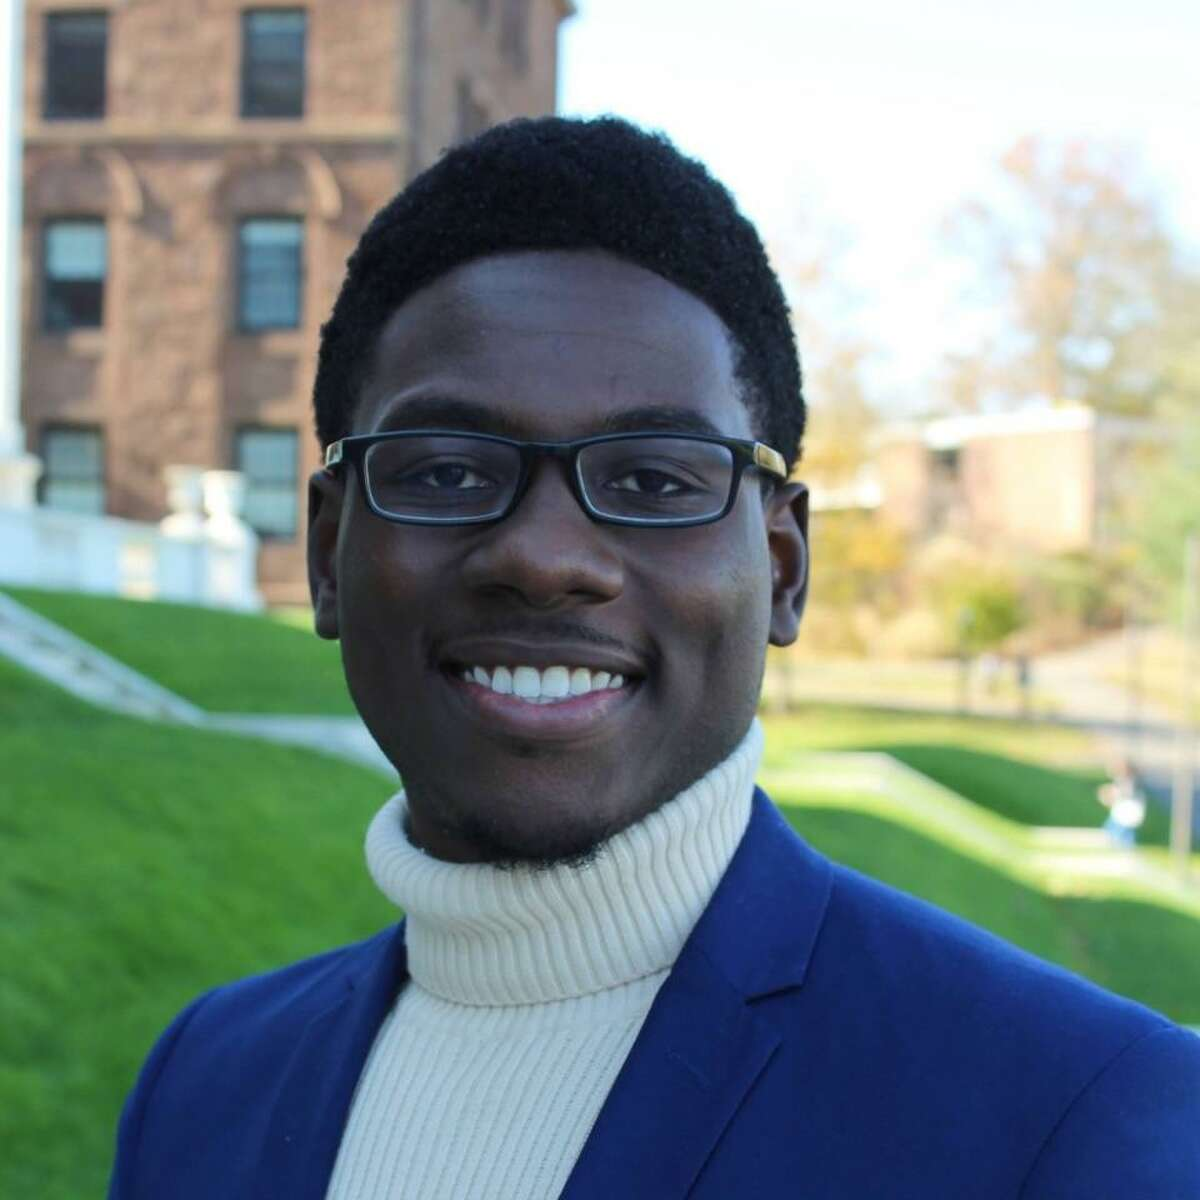 Fitzroy 'Pablo' Wickham, a senior at Wesleyan university who was named the 2021 Rhodes Scholar for Jamaica.